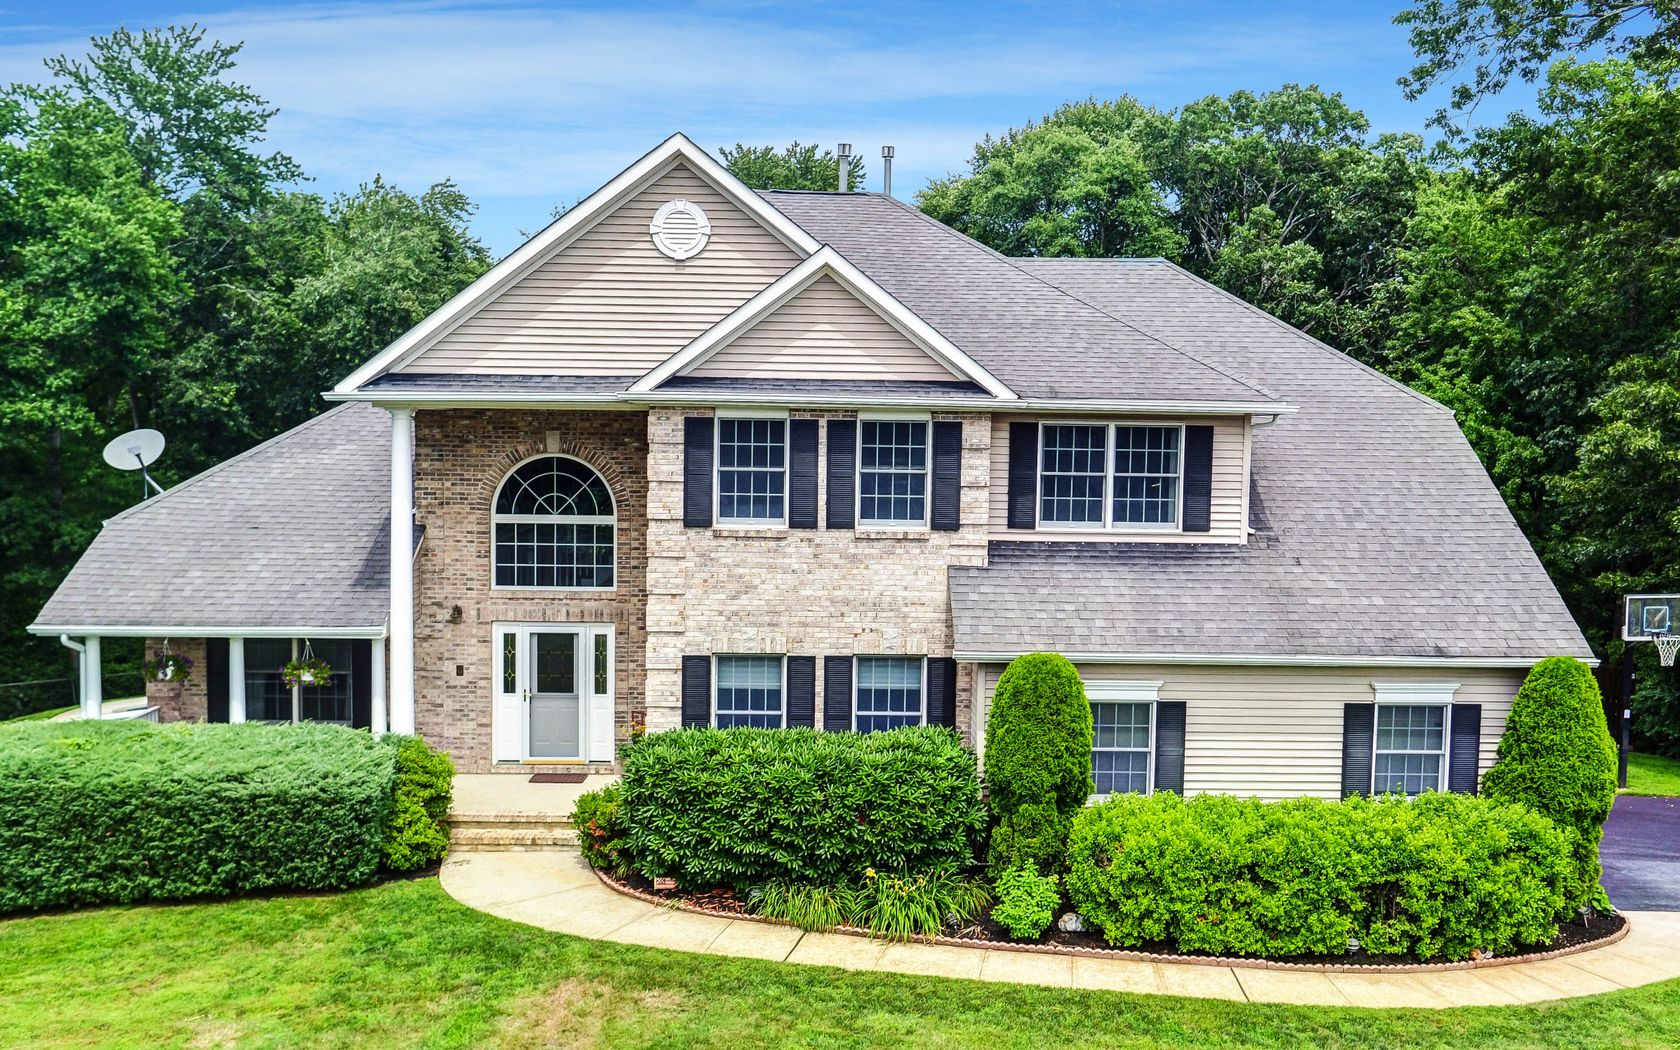 Single Family Home for Sale at Perfectly Situated on Scenic Lot 2070 Overbrook Drive Wall, New Jersey 07719 United States